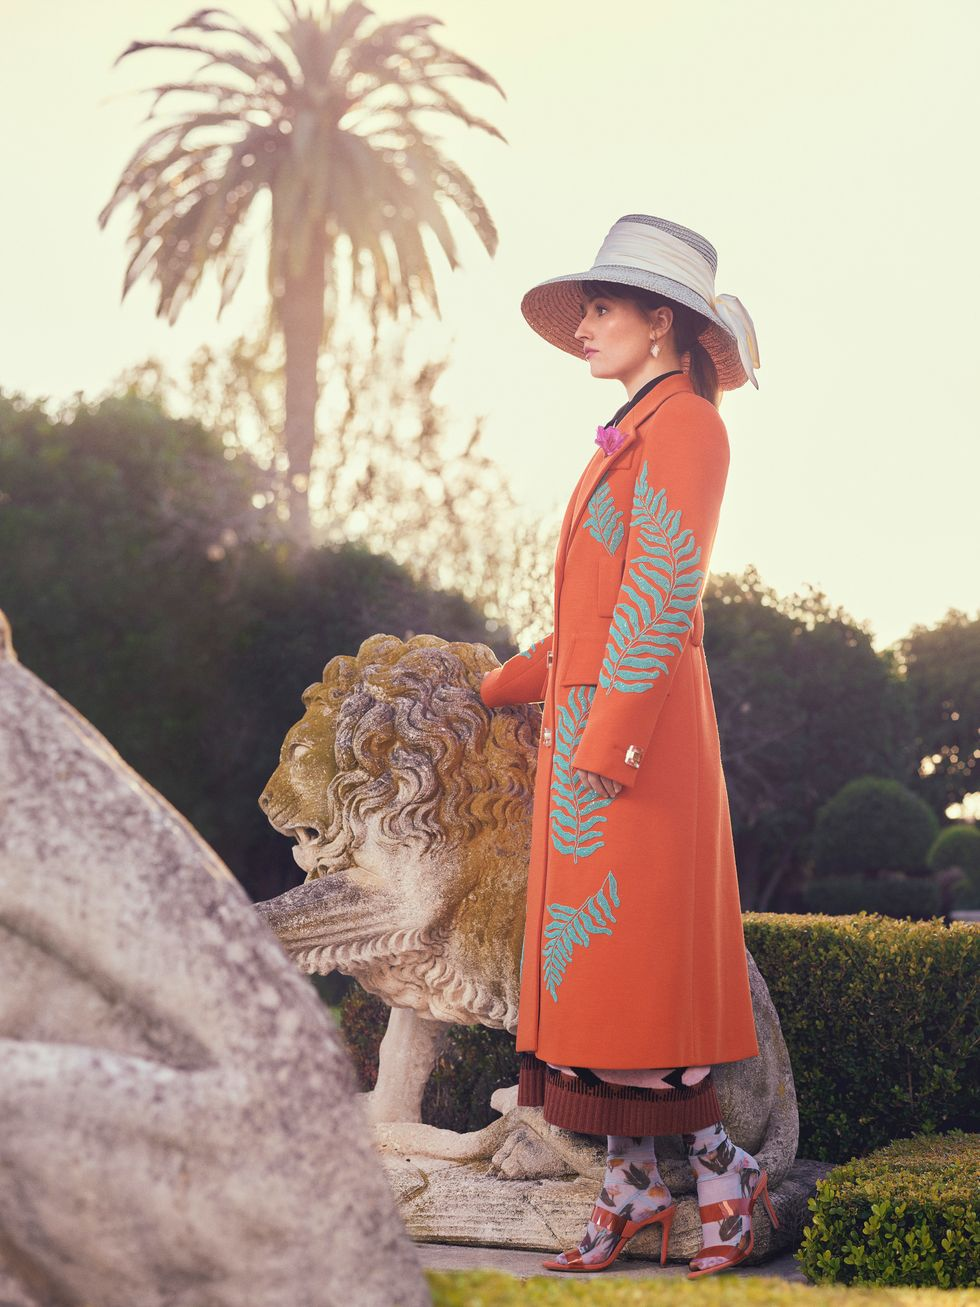 Actress Kaitlyn Dever stands next to a lion statue wearing an orange overcoat.